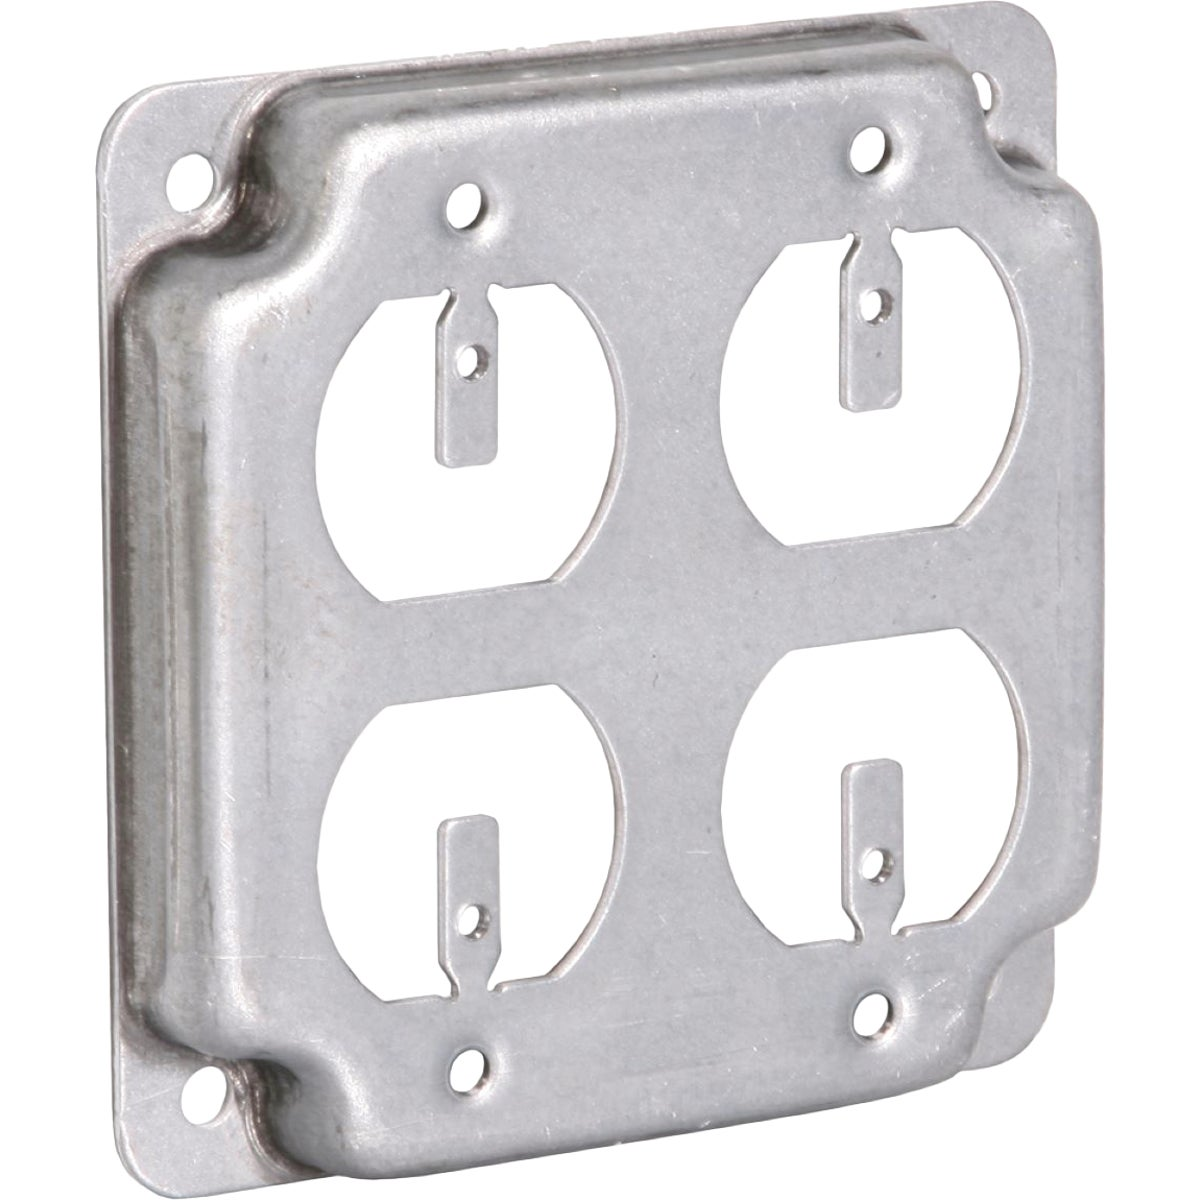 "4"" SQ 4-OUTLET BOX COVER - RS830 by Thomas & Betts"